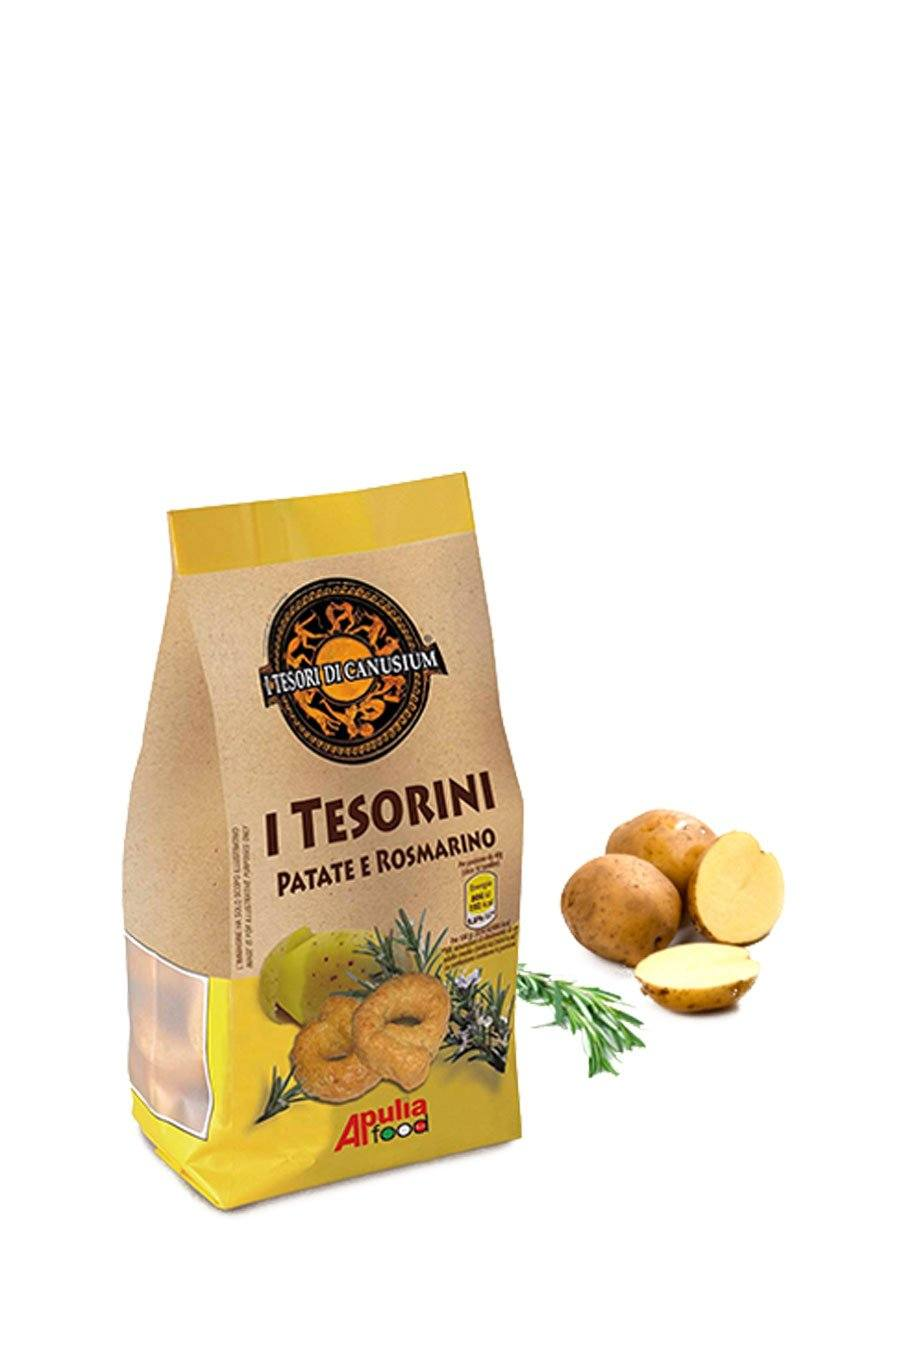 Italian Taralli with Potato & Rosemary 225g - Agrumia